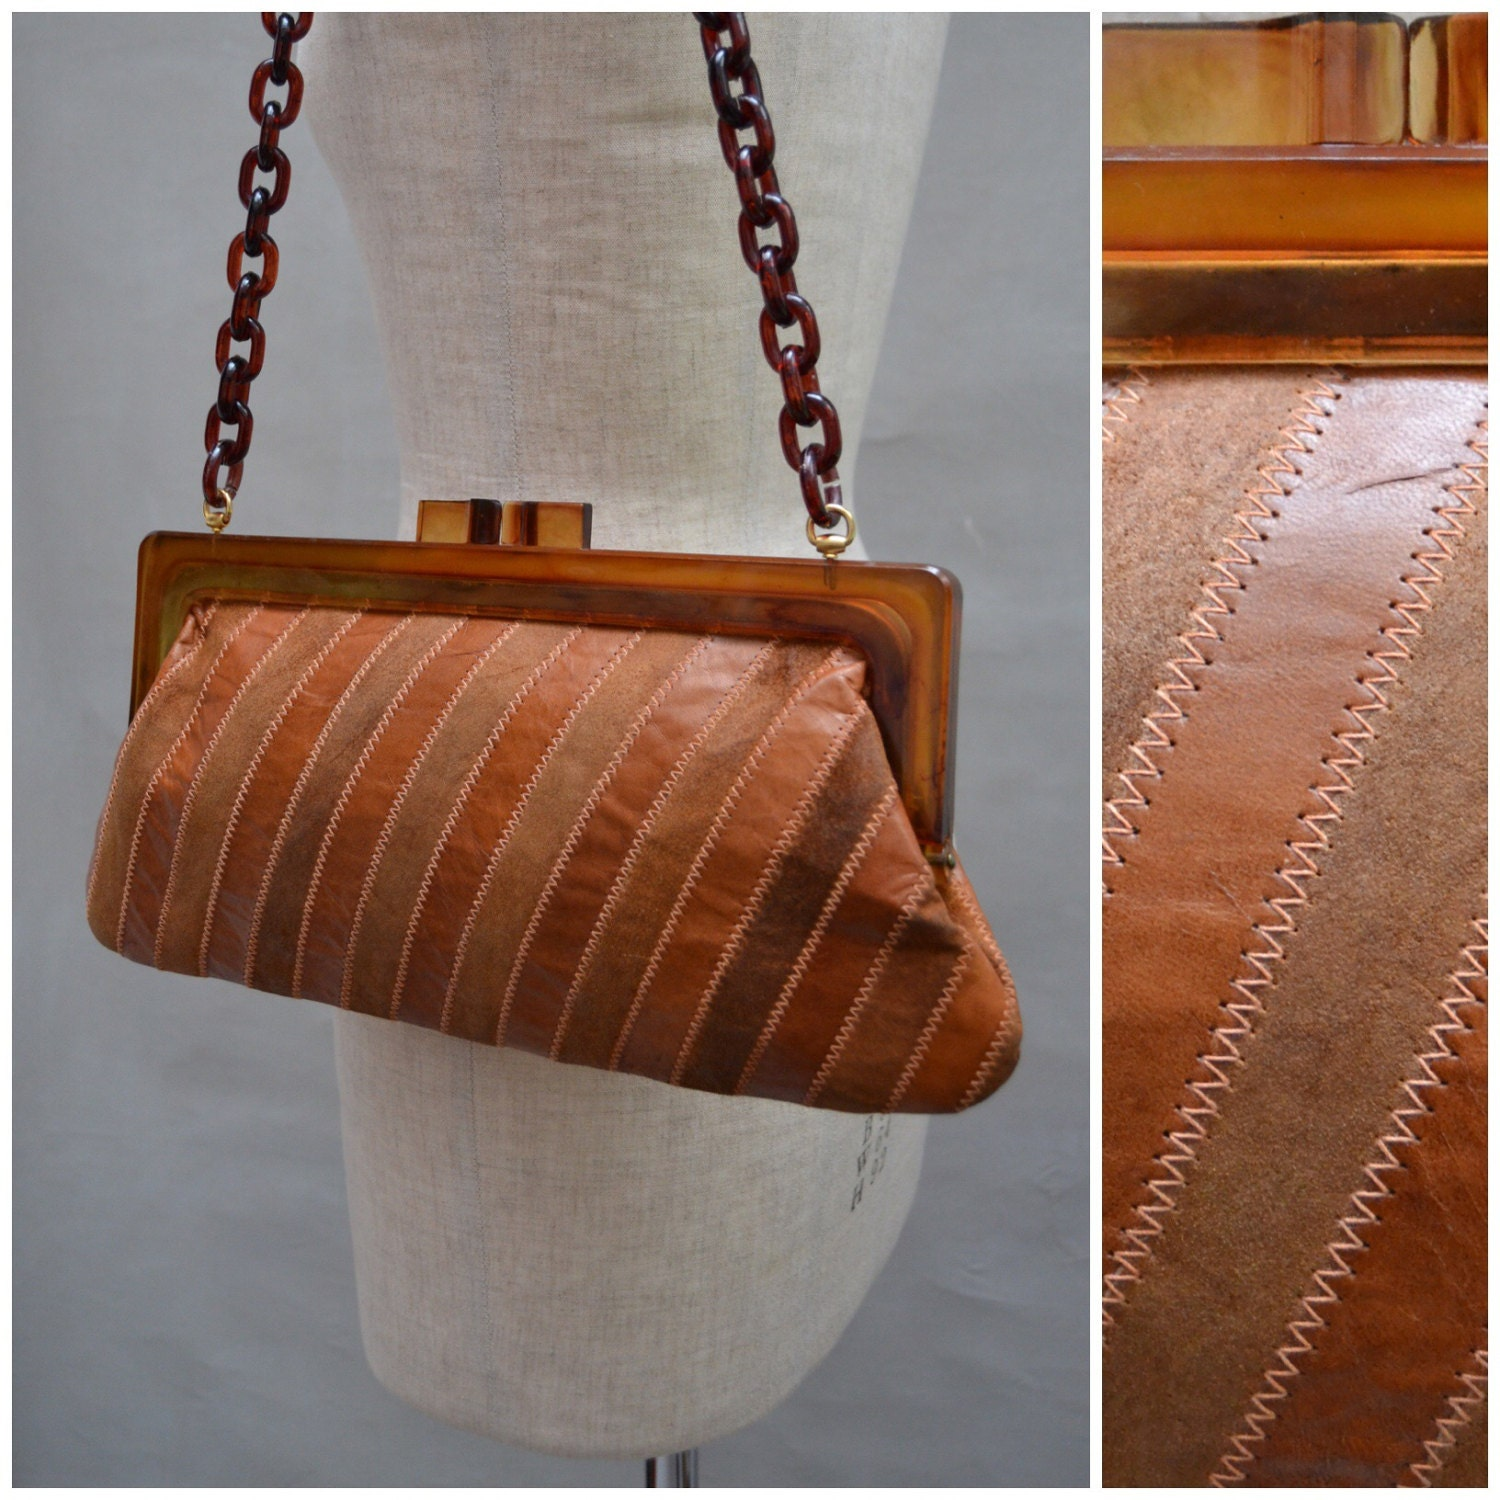 Vintage handbag 1970s hinge frame shoulder bag with chunky plastic chain strap 70s leather  suede striped Purse HippieHippyHipster